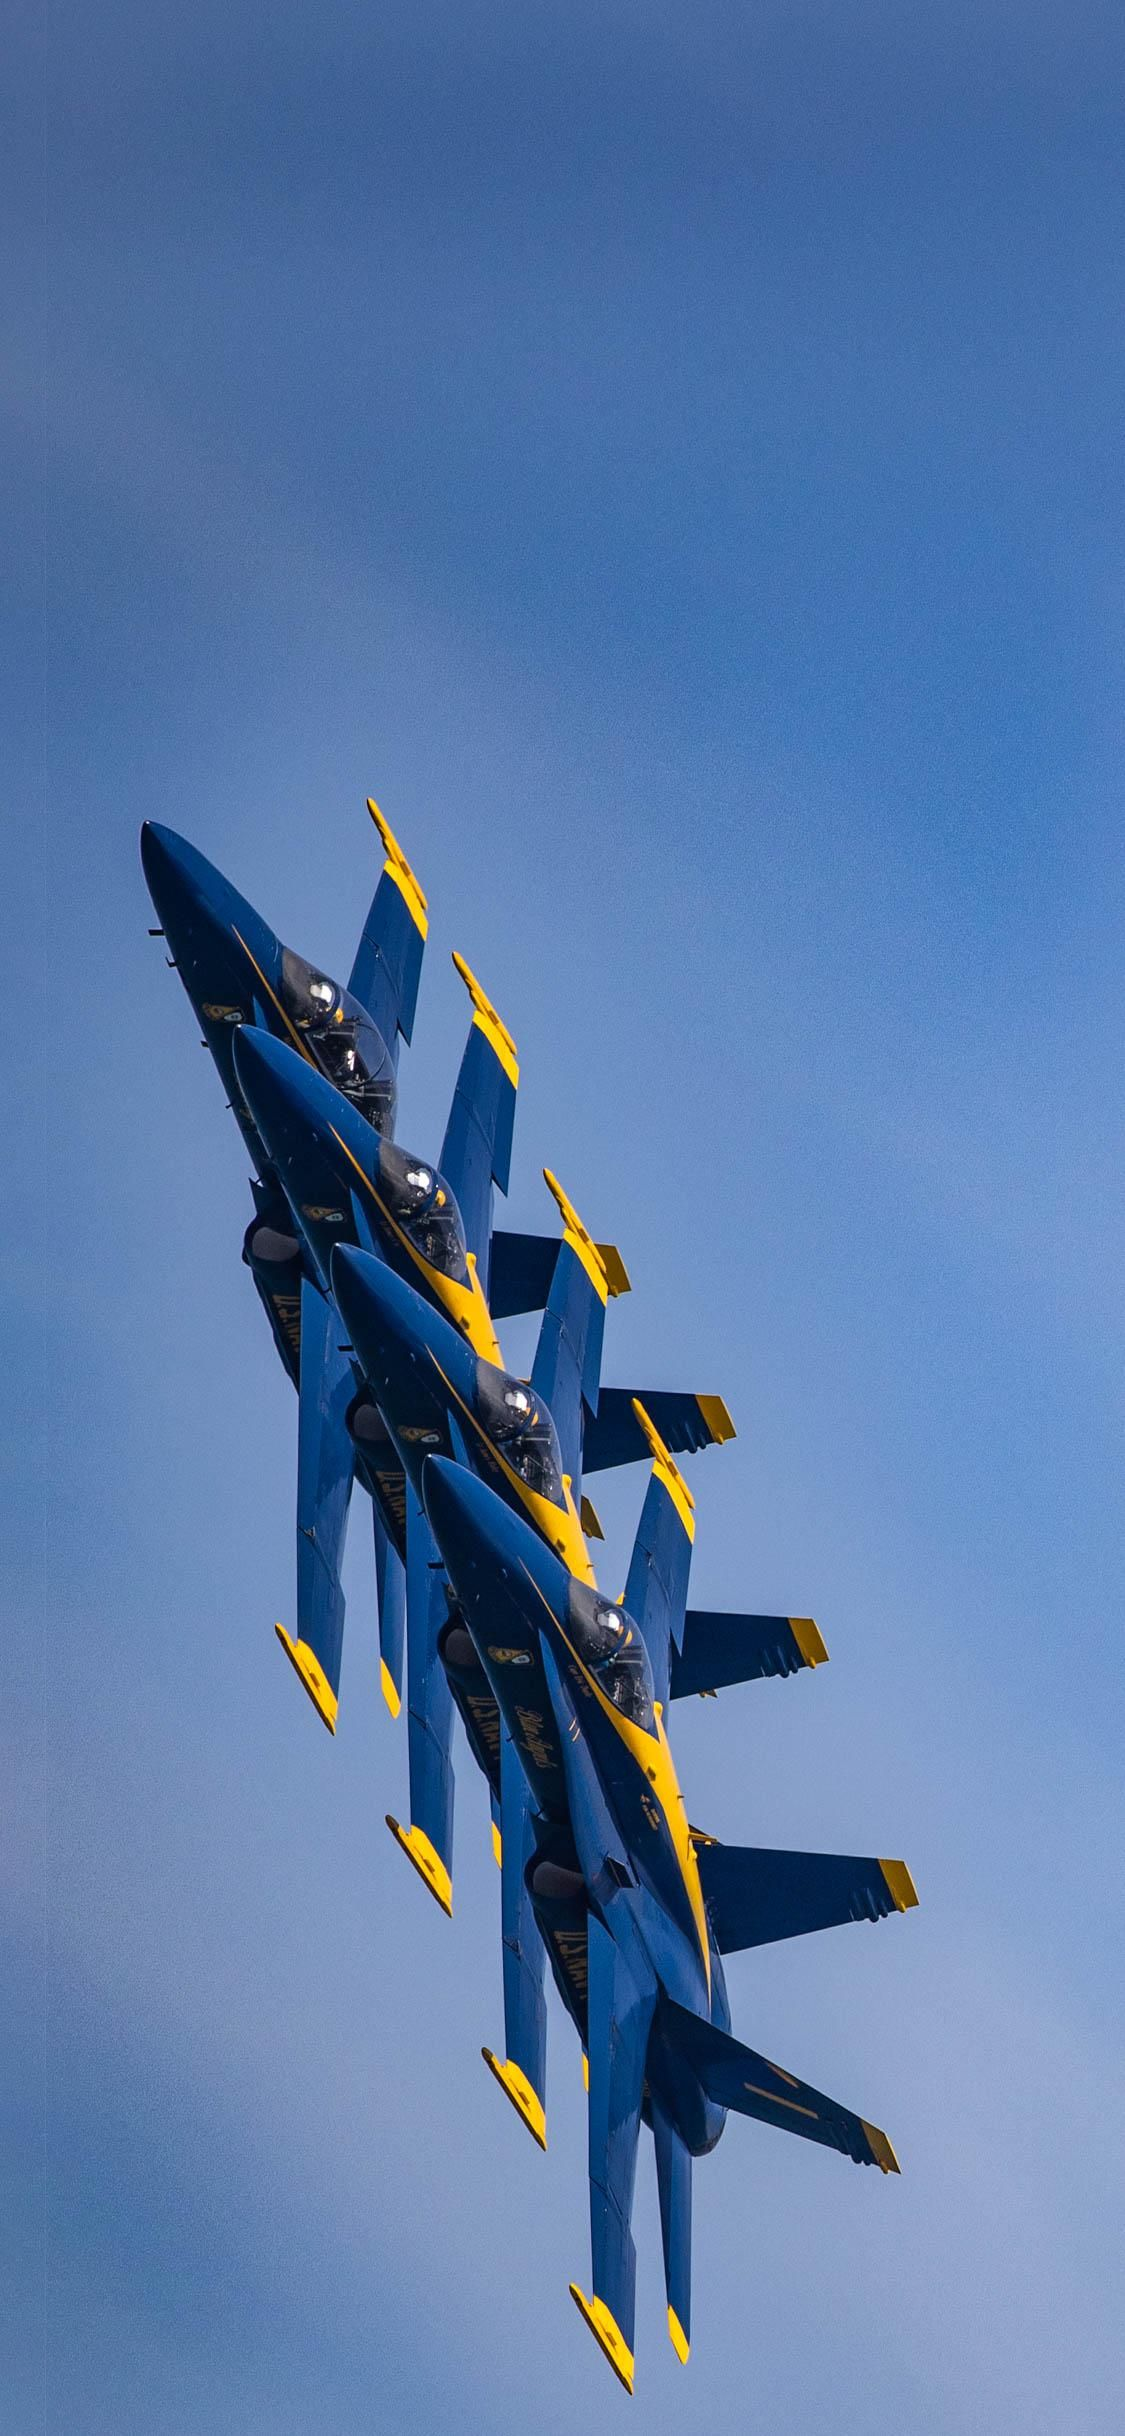 The Blue Angels Fort Lauderdale Air Show 2019 Oc For Iphone X 1125x2436 Blue Angels Air Show Blue Angels Us Navy Blue Angels